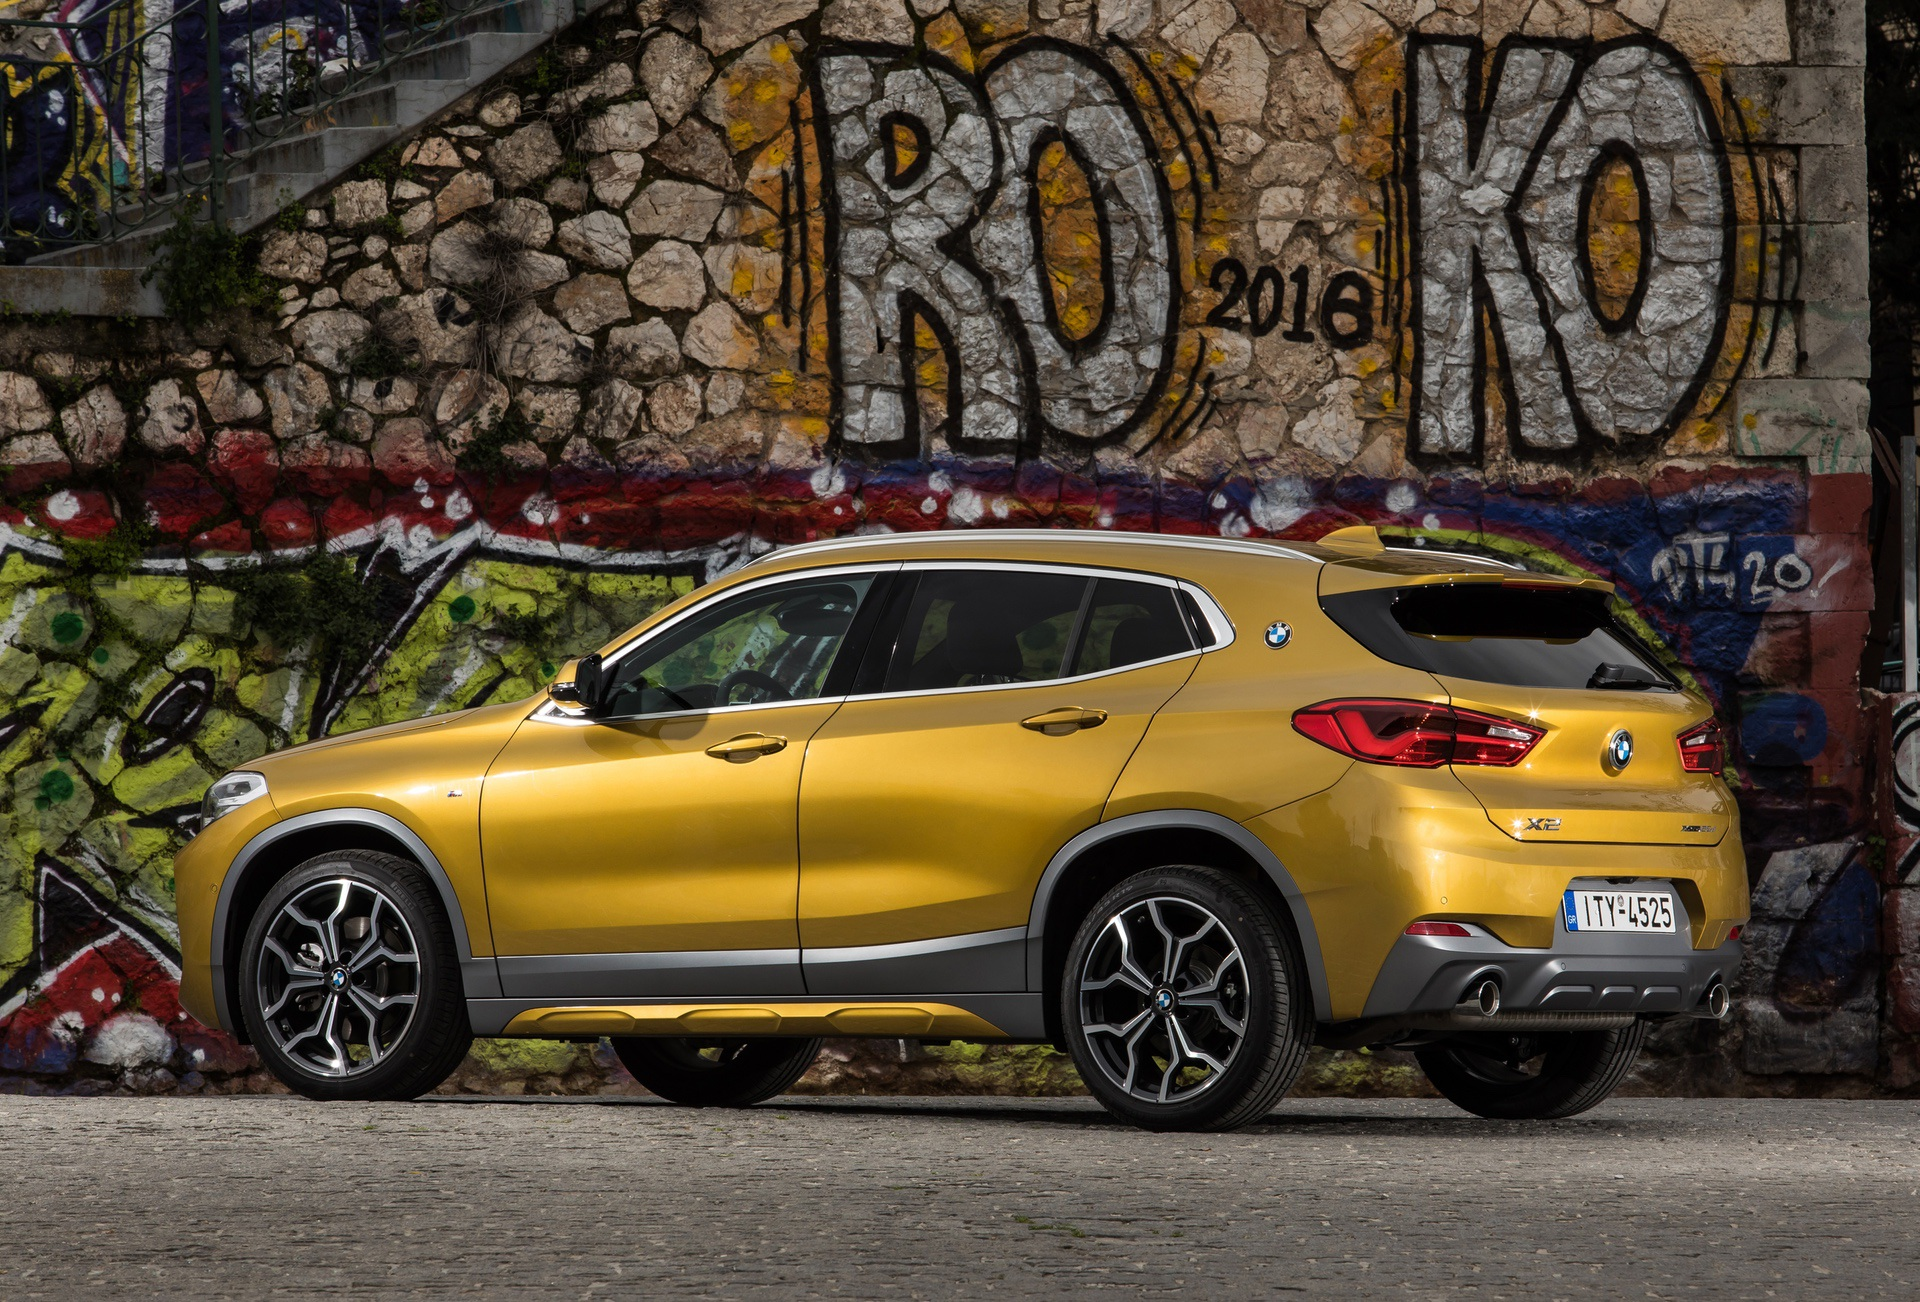 BMW_X2_Greek_presskit_0091